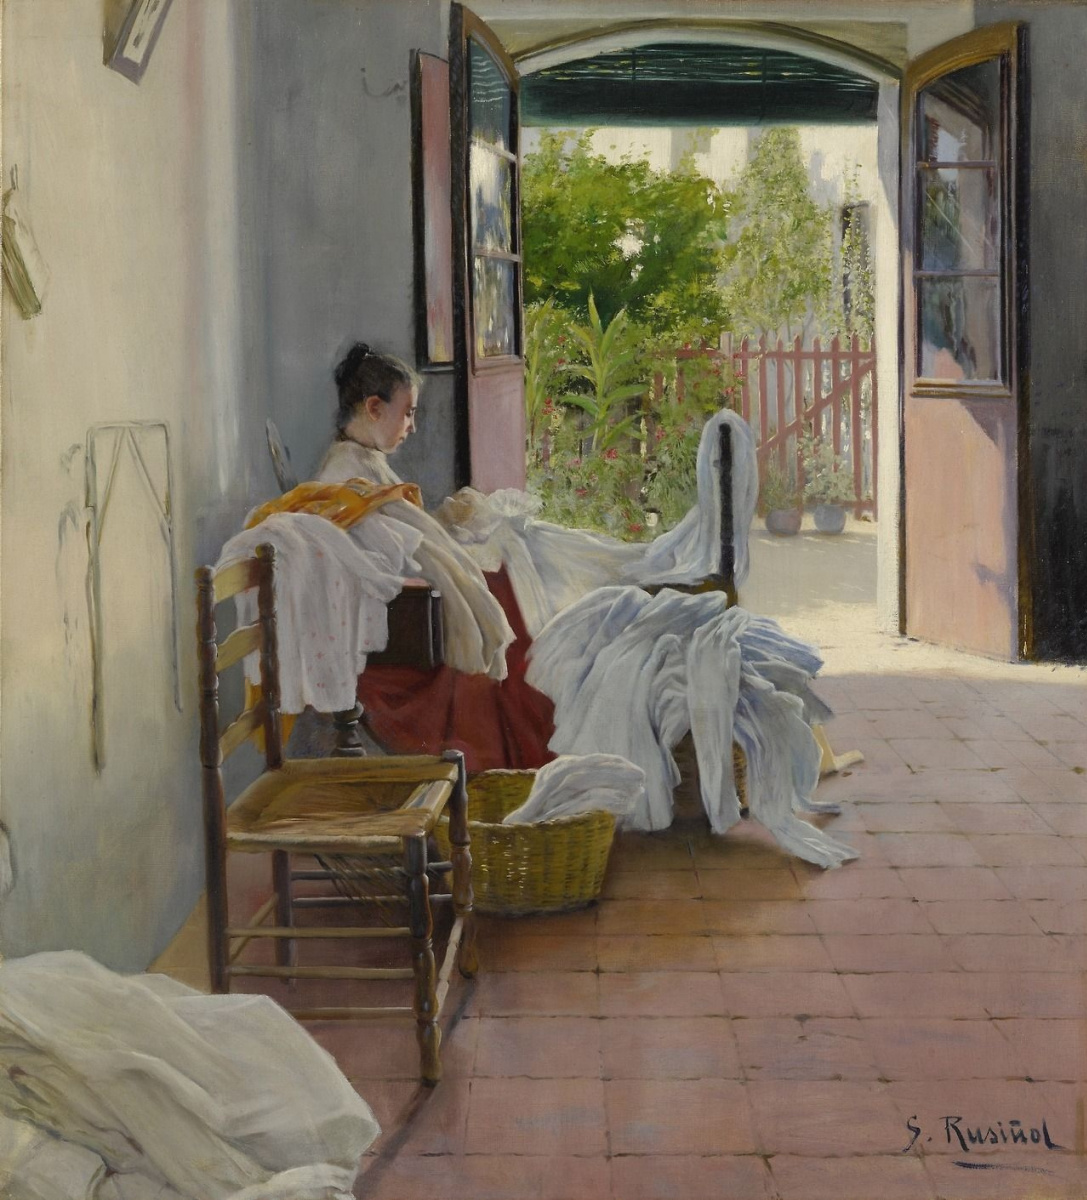 Santiago Rusignol. Interior in Sitges with a Young Woman Sewing